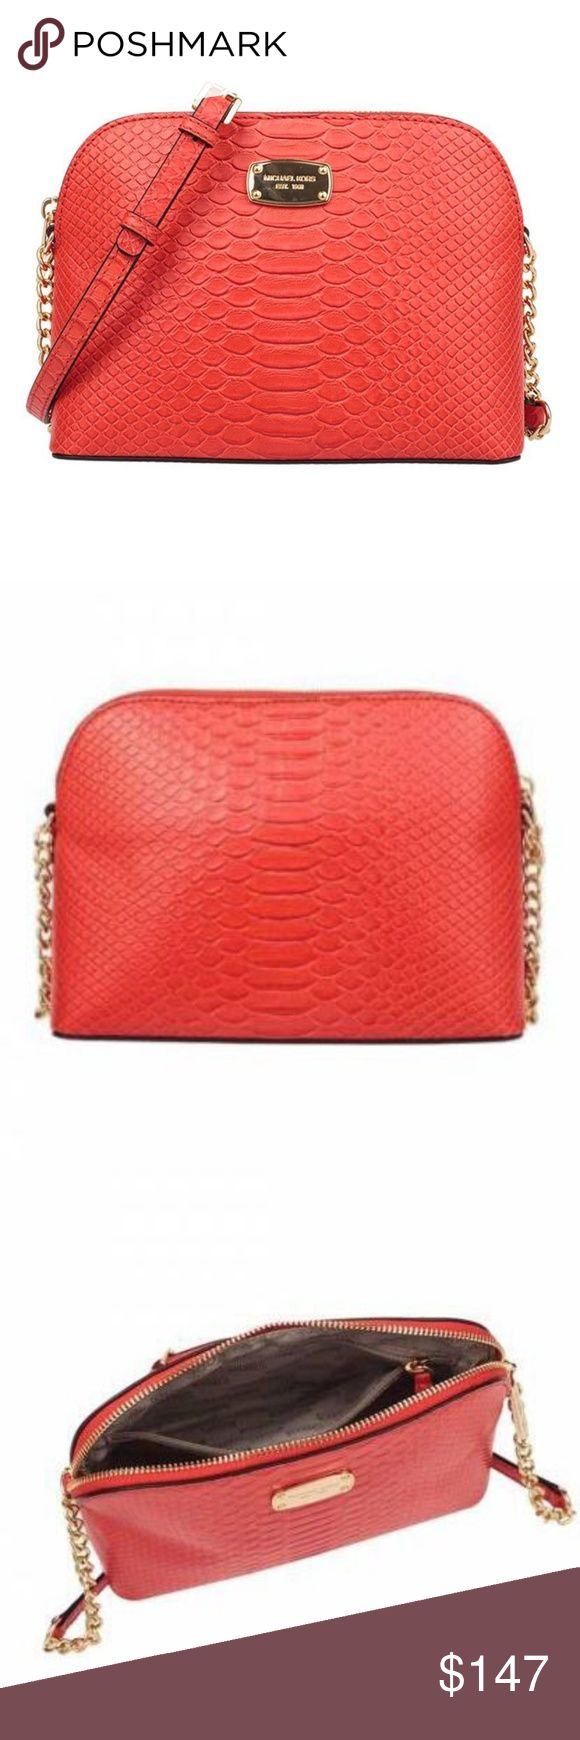 """Michael Kors Cindy Mandarin Embossed Crossbody Bag Michael Kors Cindy Mandarin Embossed Leather Large Crossbody Bag  item# 273006549509  100% Authentic Michael Kors!  Buy with confidence!  • MSRP: $268,00  • Style: 35T7GCPC3E  Features:  • Made of embossed Python leather with logo detail in front  • Top zip closure  • Open compartment with 1 zip pocket and 1 open pockets  • Adjustable crossbody 22""""-24"""" drop  • Dimensions: 8.75""""L X 7""""H X 3.5""""D  • Gold tone hardware  • Imported  Please feel…"""